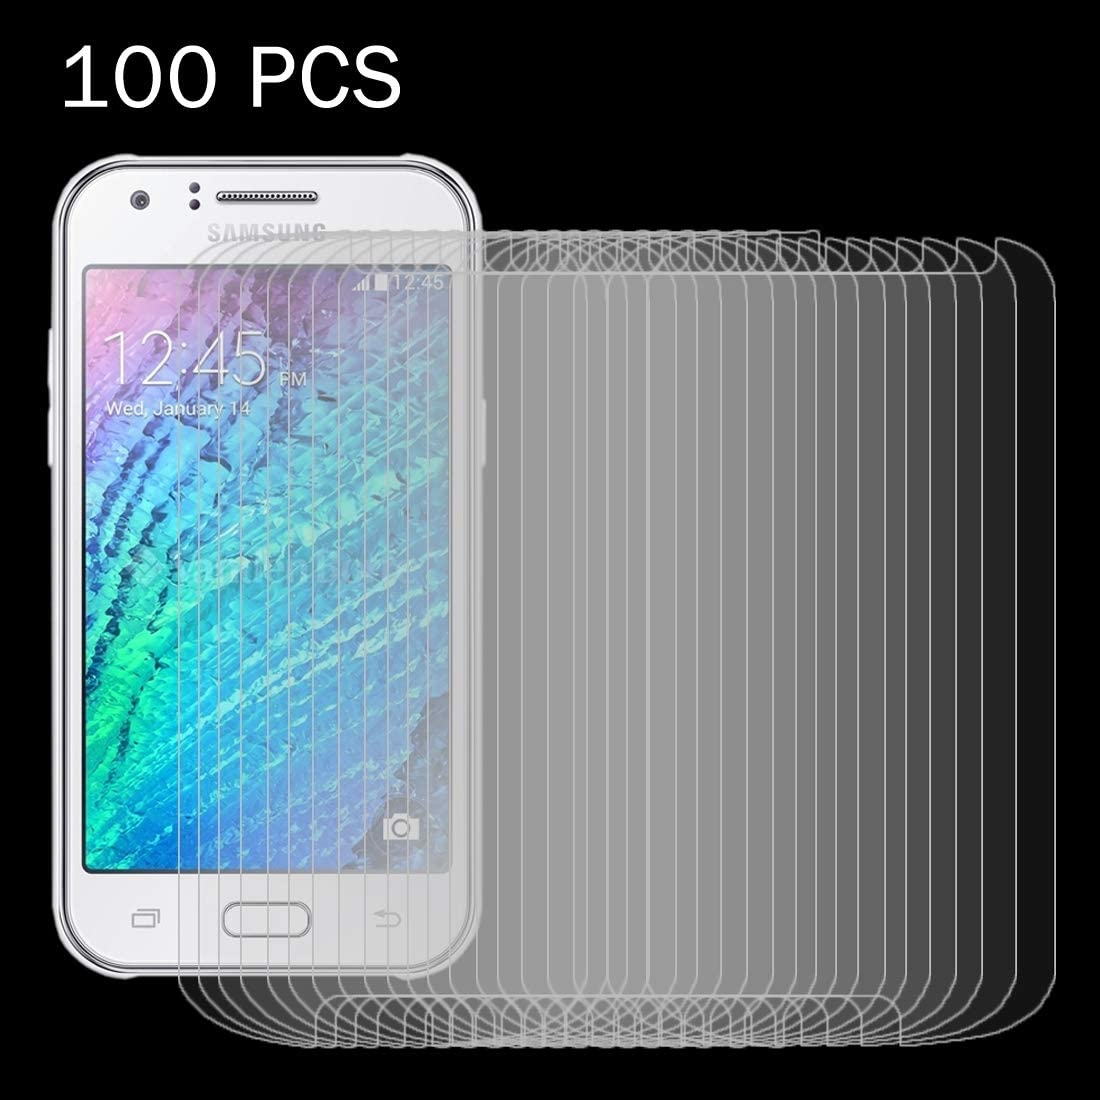 JIANGNIUS 100 PCS for Galaxy J1 Ace J110 0.26mm 9H Surface Hardness 2.5D Explosion-Proof Tempered Glass Screen Film